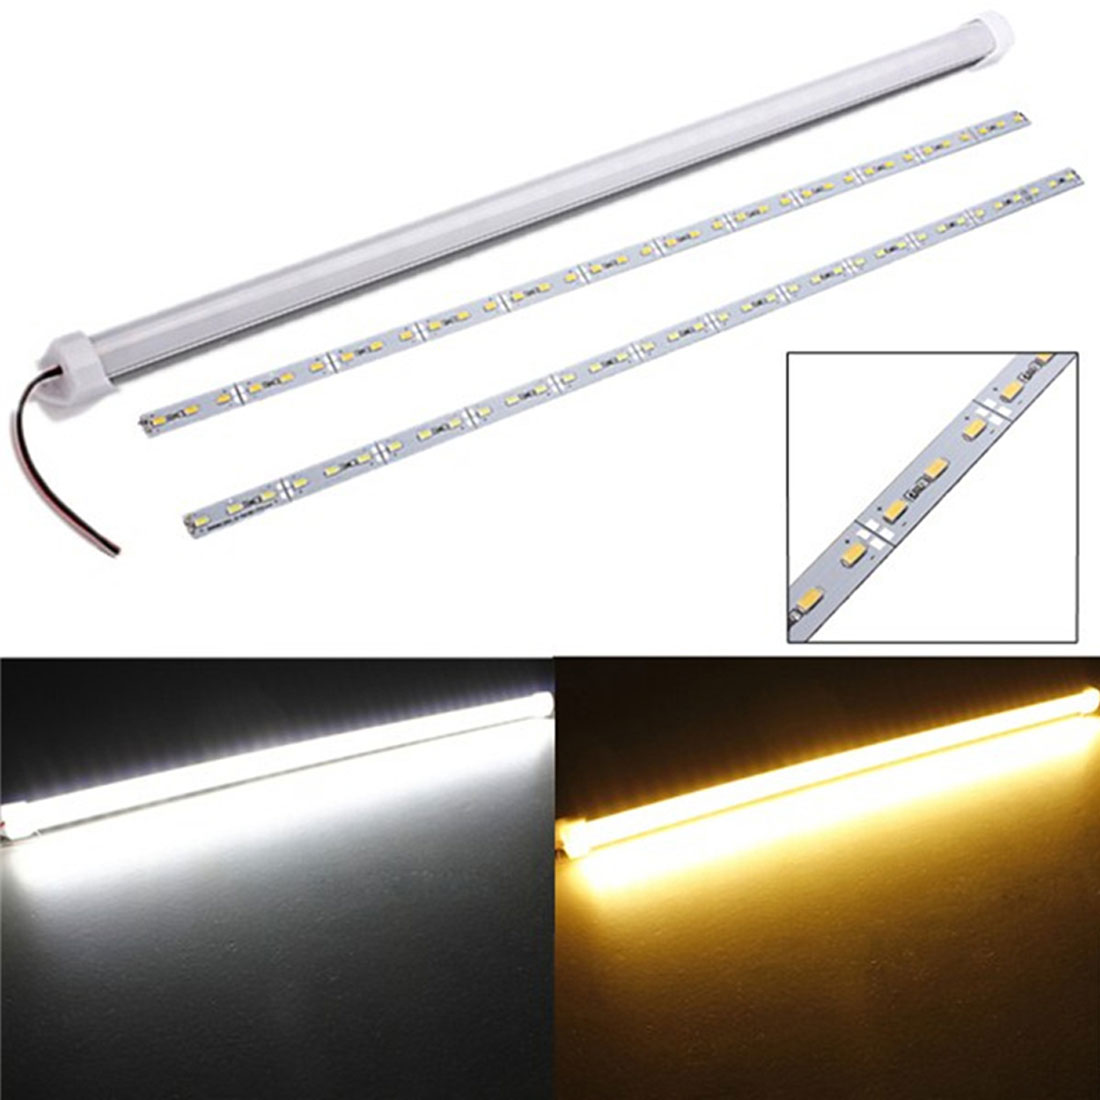 11W 50cm Waterproof Hard Rigid Light Strip Cabinet LED Bar Lamp Strip 36 LED 5630 SMD Pure White/Warm White Light with Cover